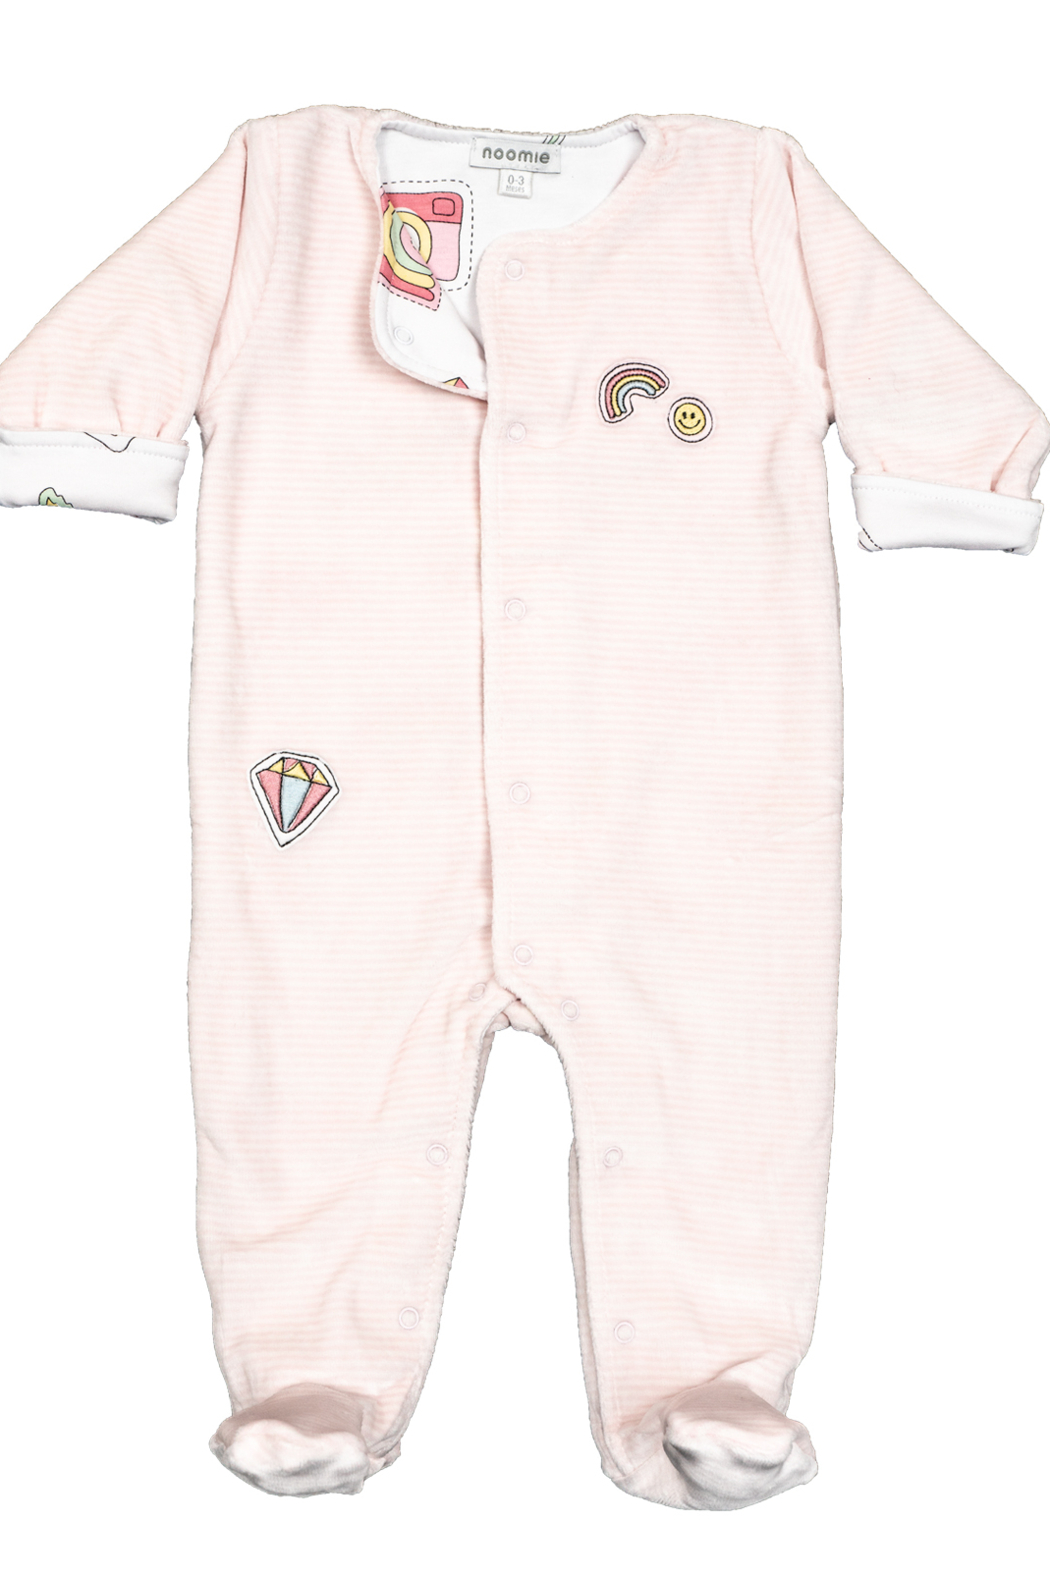 Noomie Pink Patches Velour Footie - Main Image